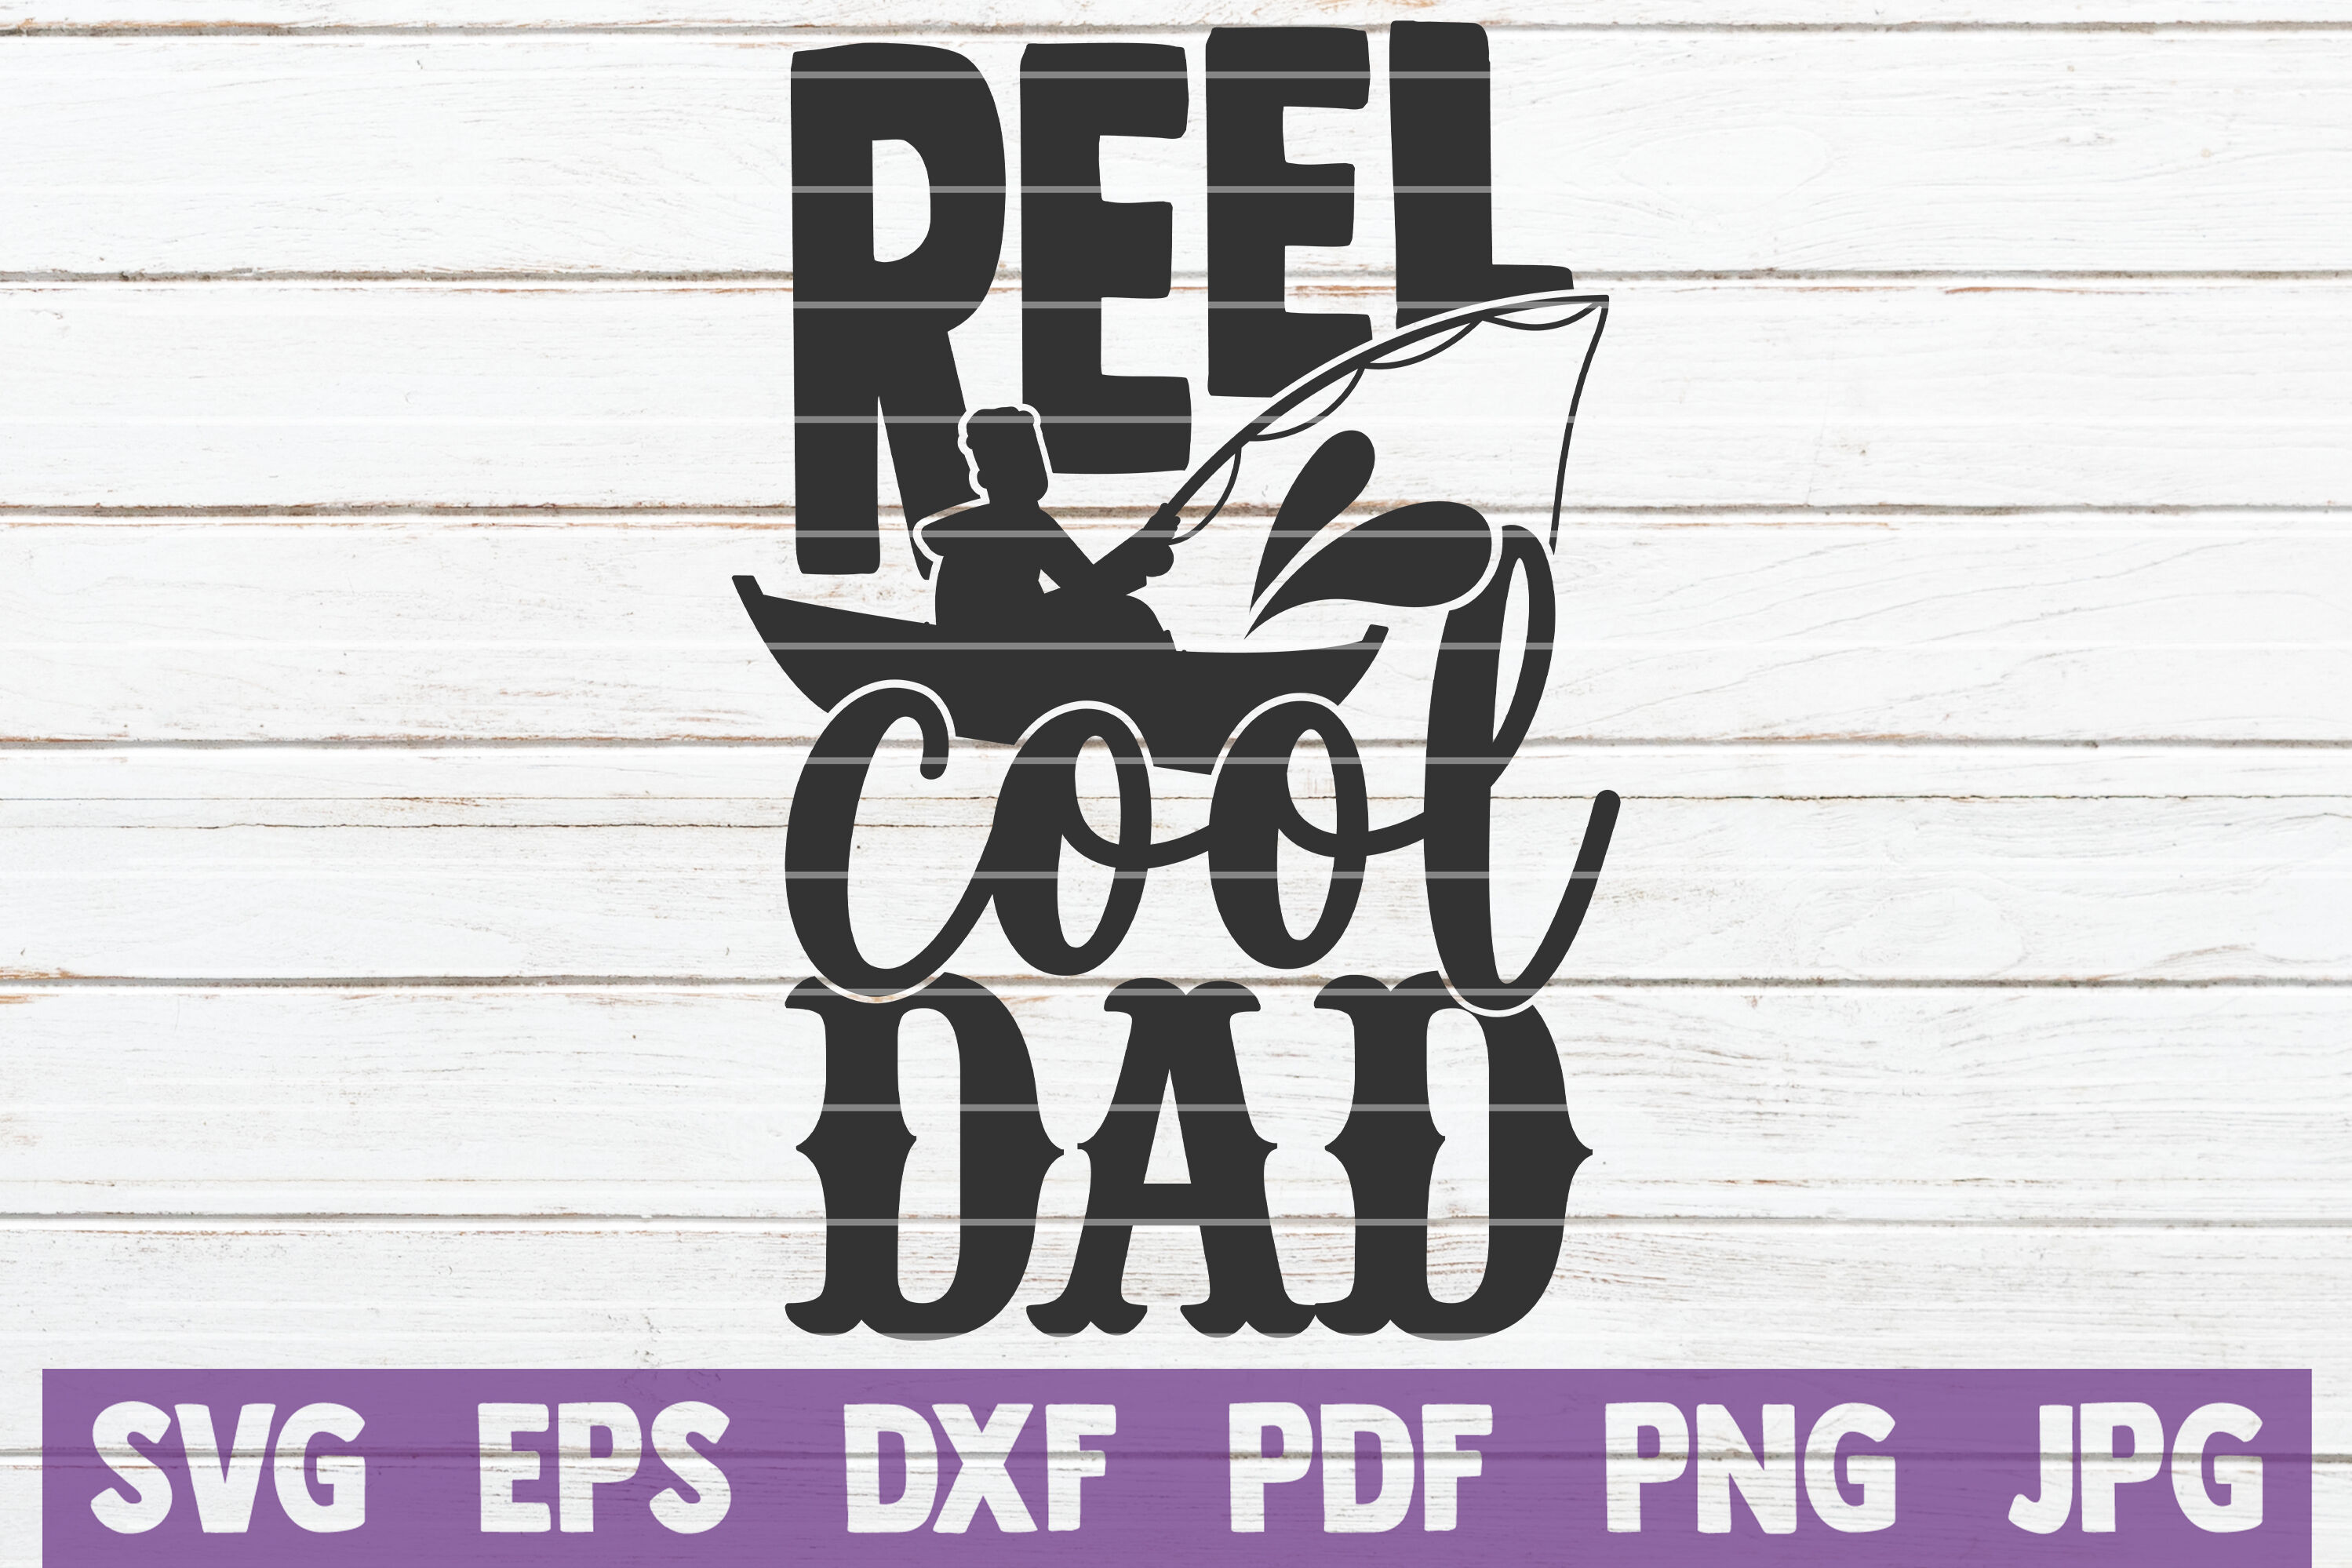 Reel Cool Dad Svg Cut File By Mintymarshmallows Thehungryjpeg Com